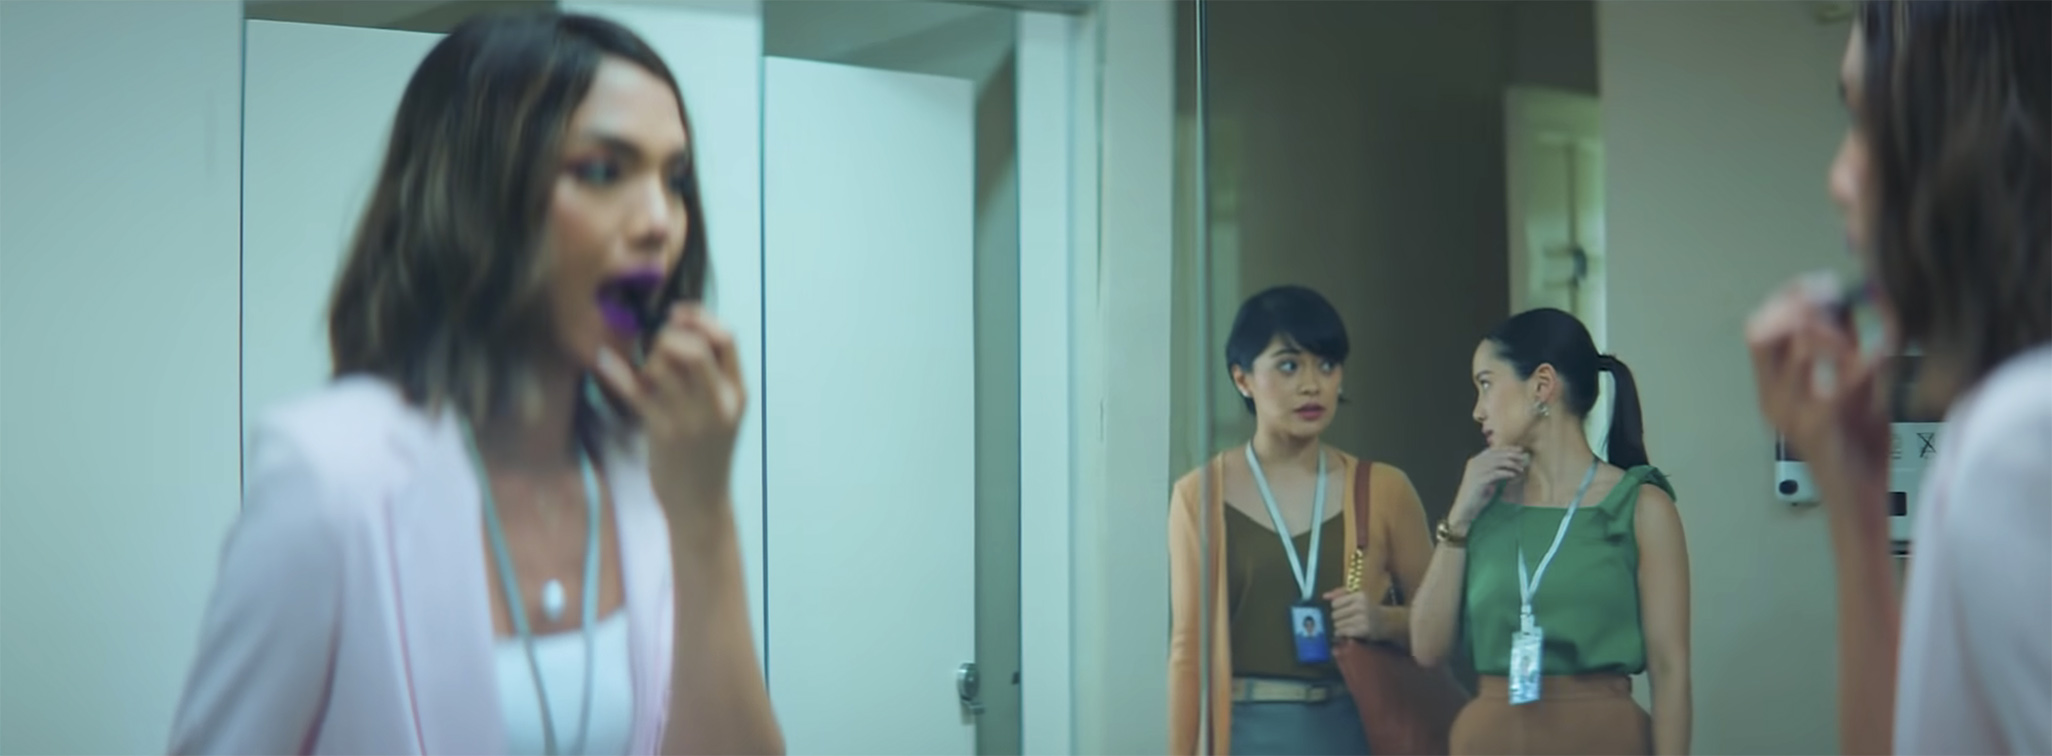 Publicis JimenezBasic Philippines releases new Lazada campaign for Pride Month 2021 that says never apologize for who you are